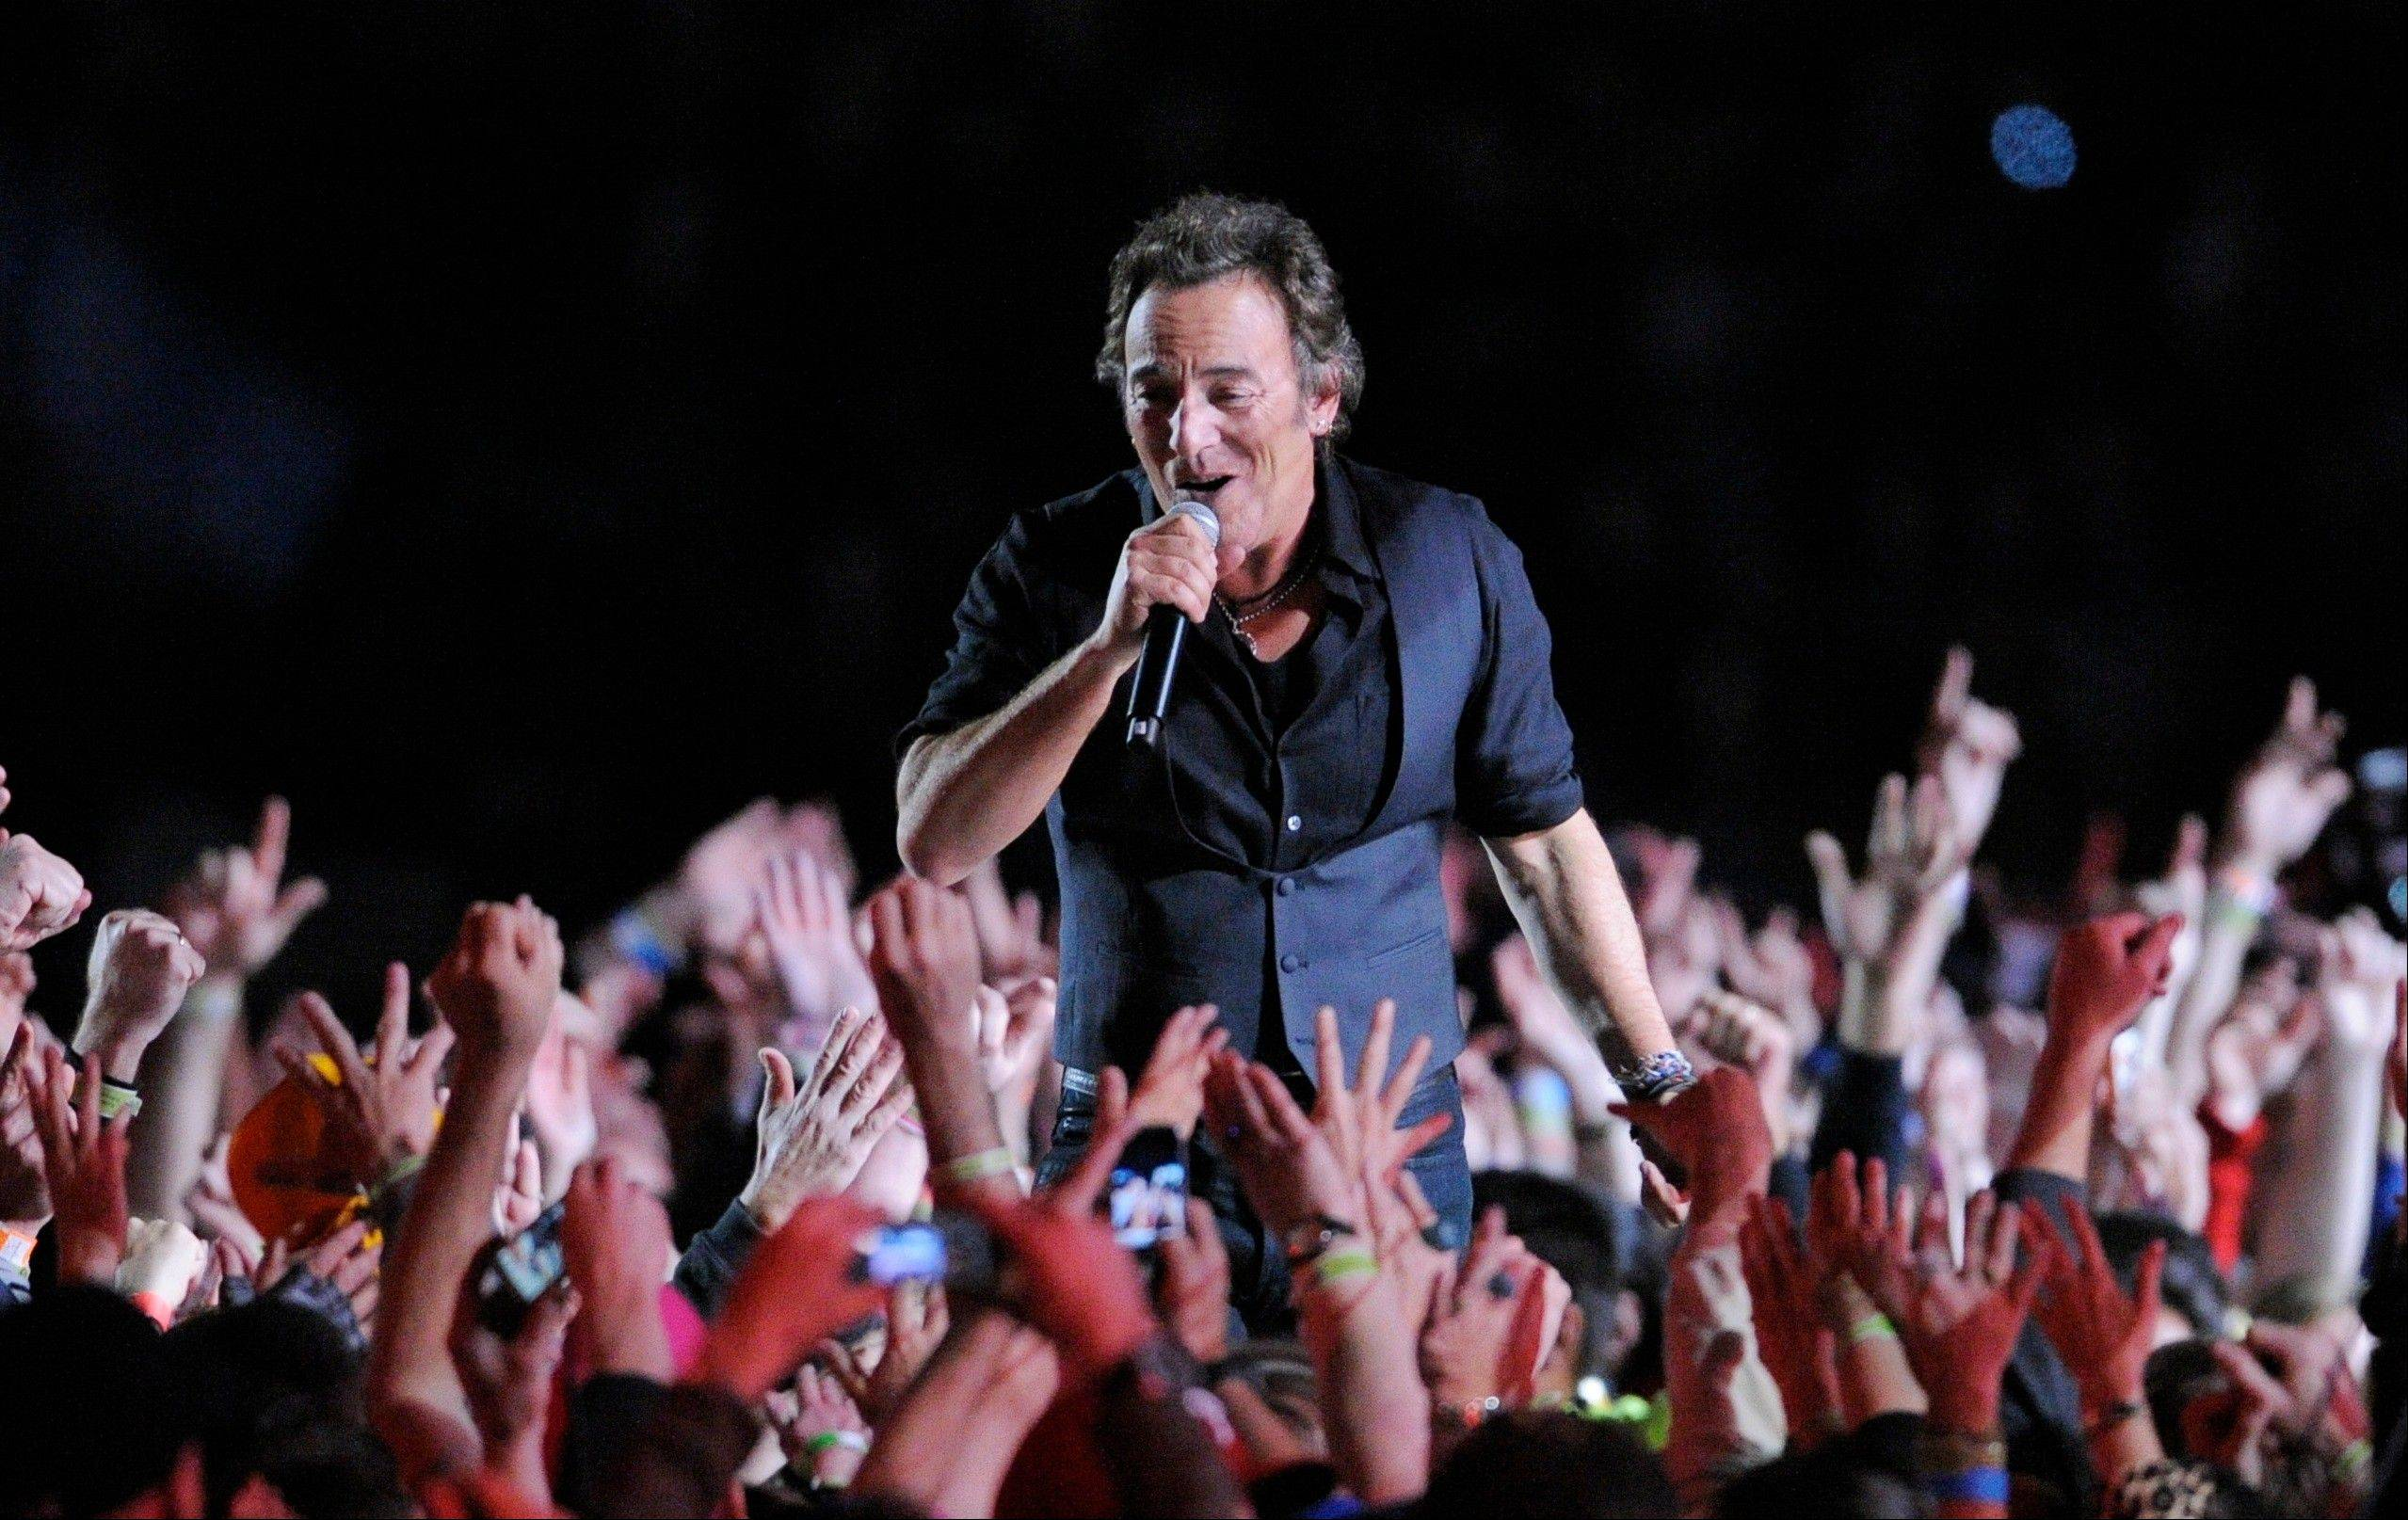 In this Feb. 1, 2009 file photo, Bruce Springsteen performs during halftime of the NFL Super Bowl XLIII football game between the Arizona Cardinals and the Pittsburgh Steelers in Tampa, Fla. This year's Super Bowl performer will Bruno Mars.